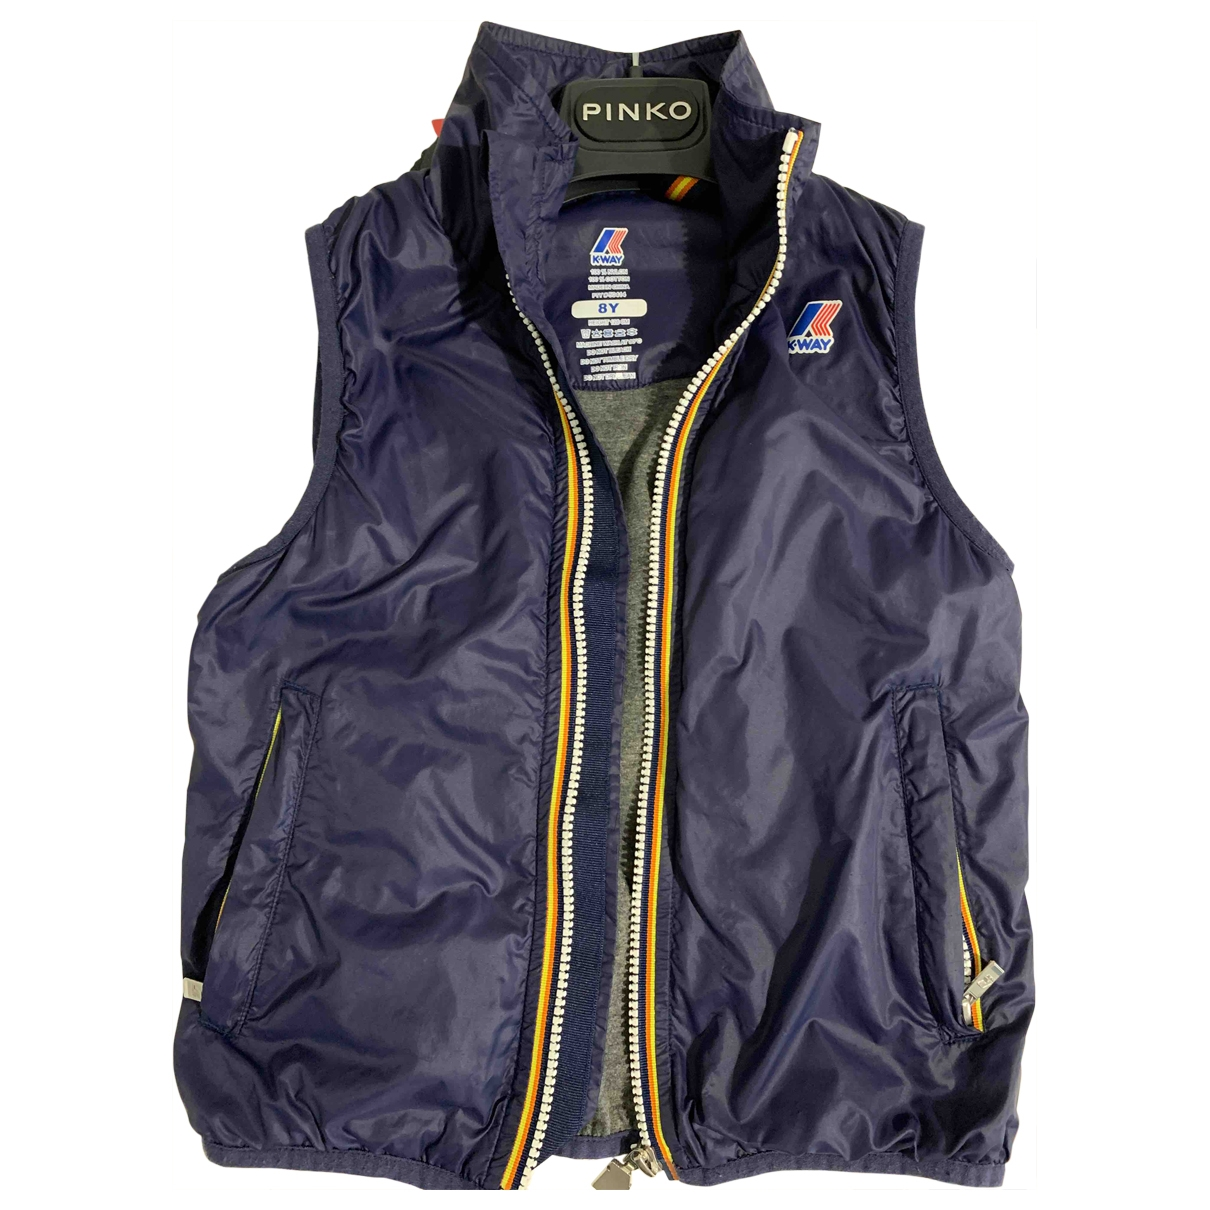 K-way \N Blue jacket & coat for Kids 8 years - until 50 inches UK